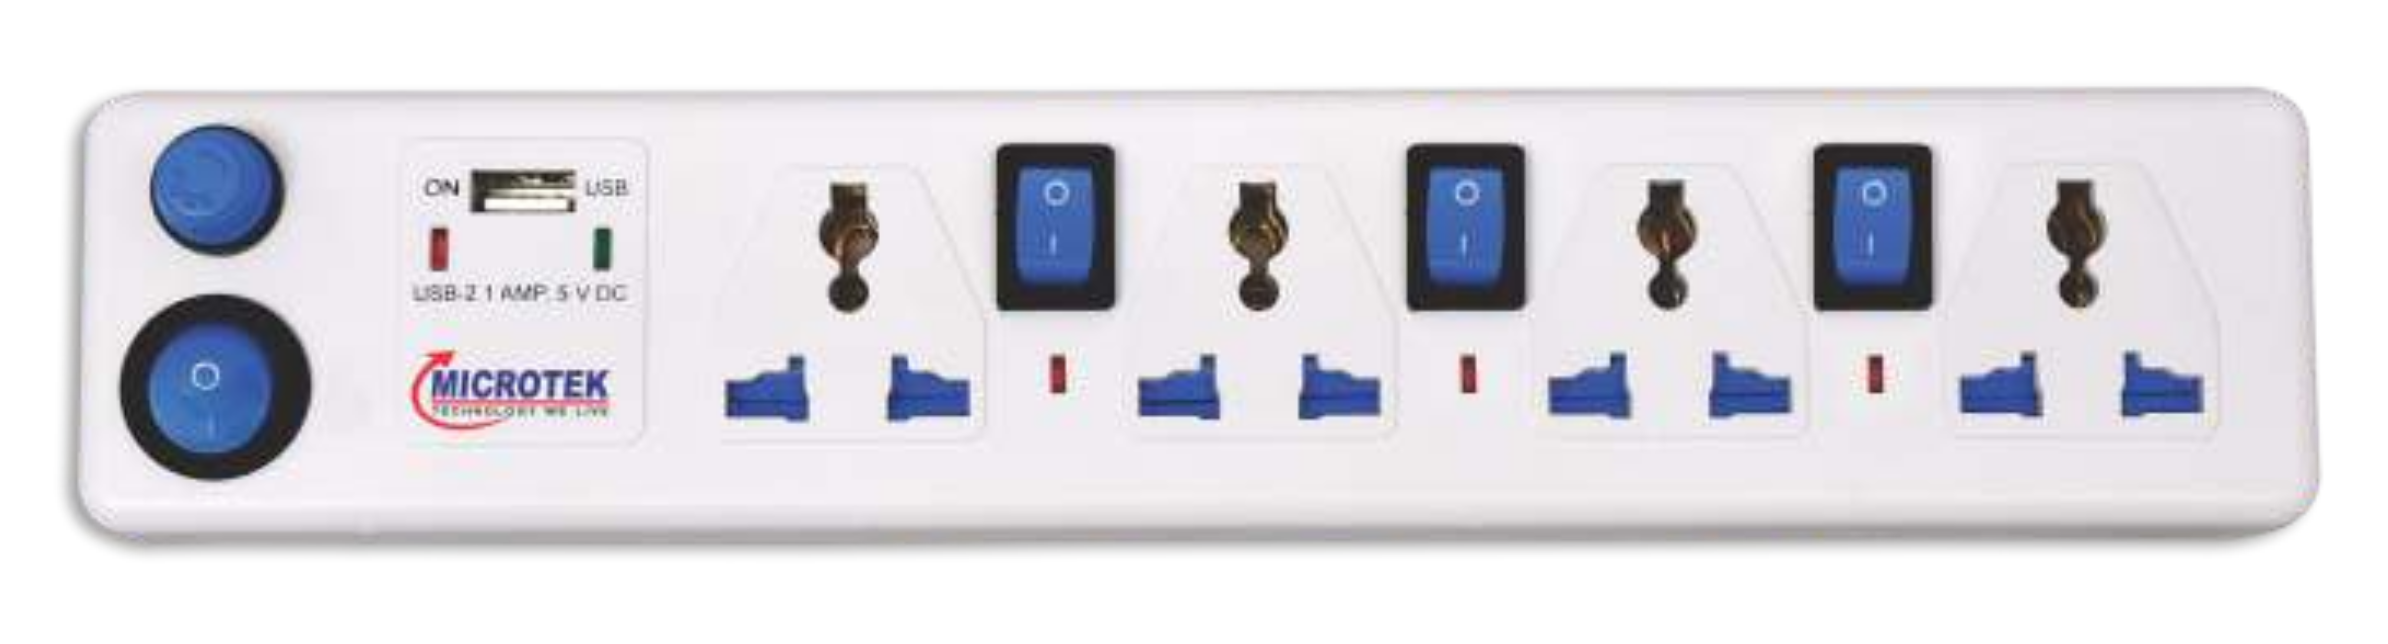 SPIKE GUARD, 4 SOCKET + USB WITH FOUR SWITCH (1.5 METER)